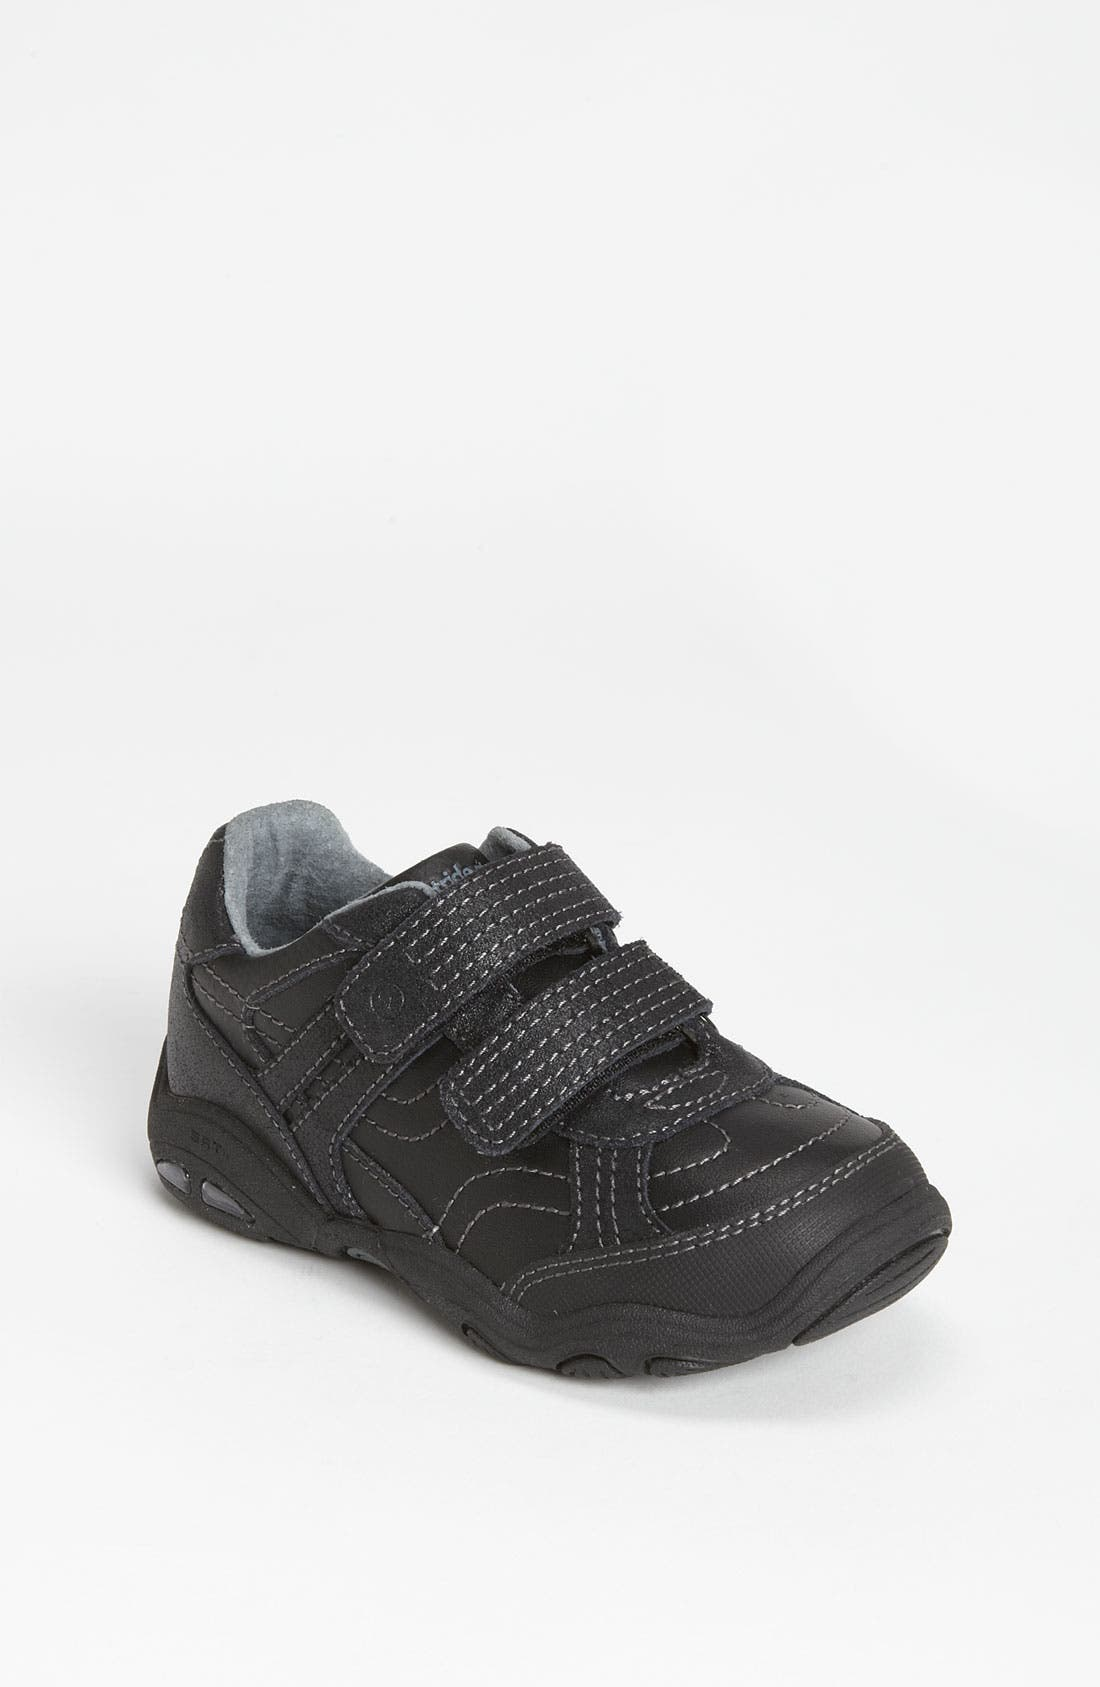 Alternate Image 1 Selected - Stride Rite 'Baxter' Sneaker (Toddler & Little Kid)